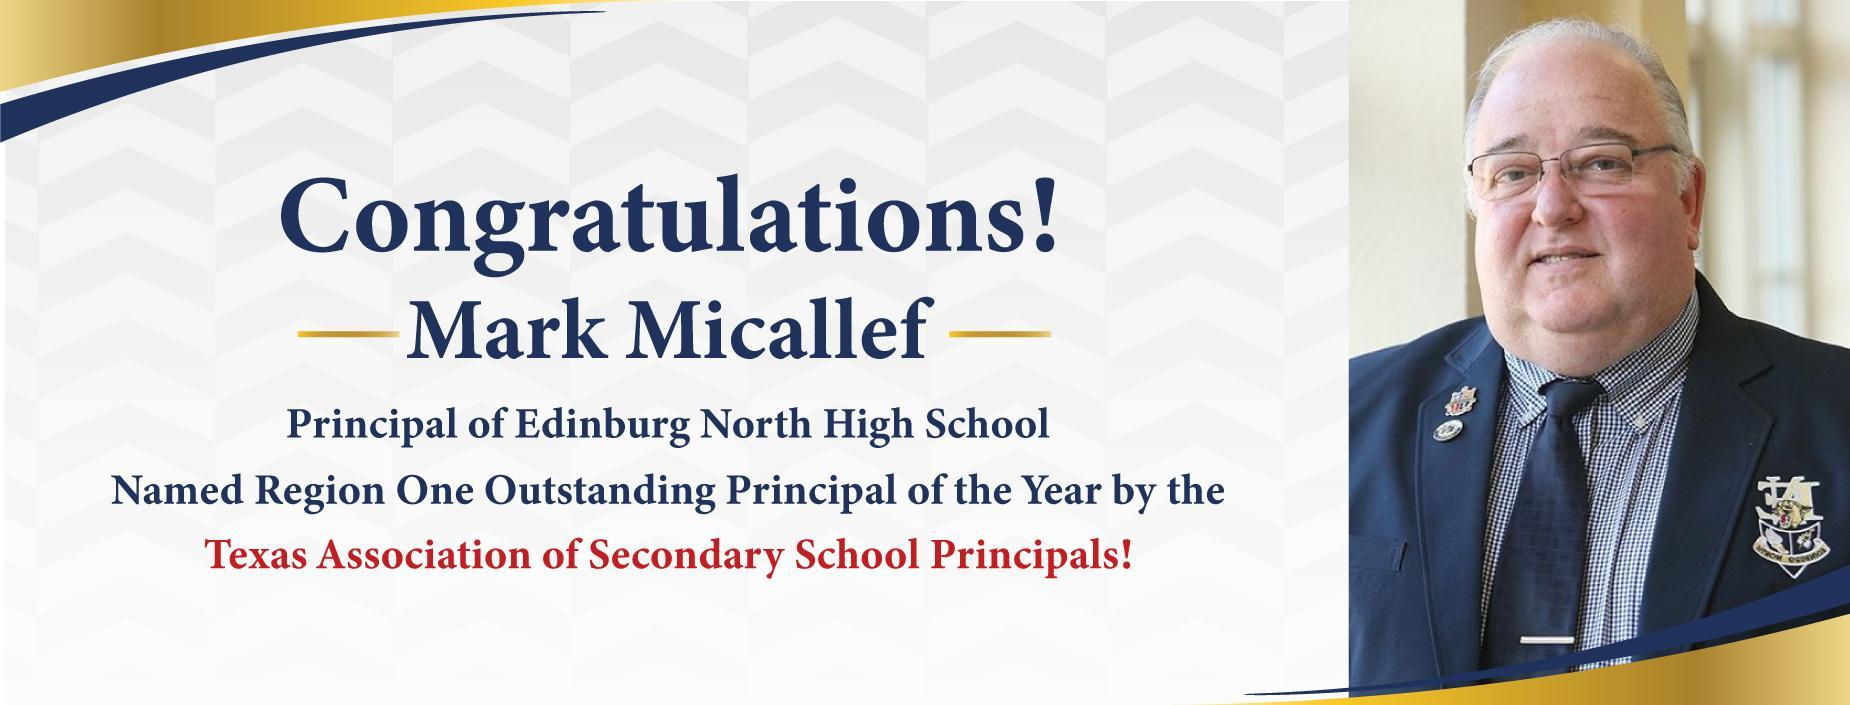 2019 Principal of the Year